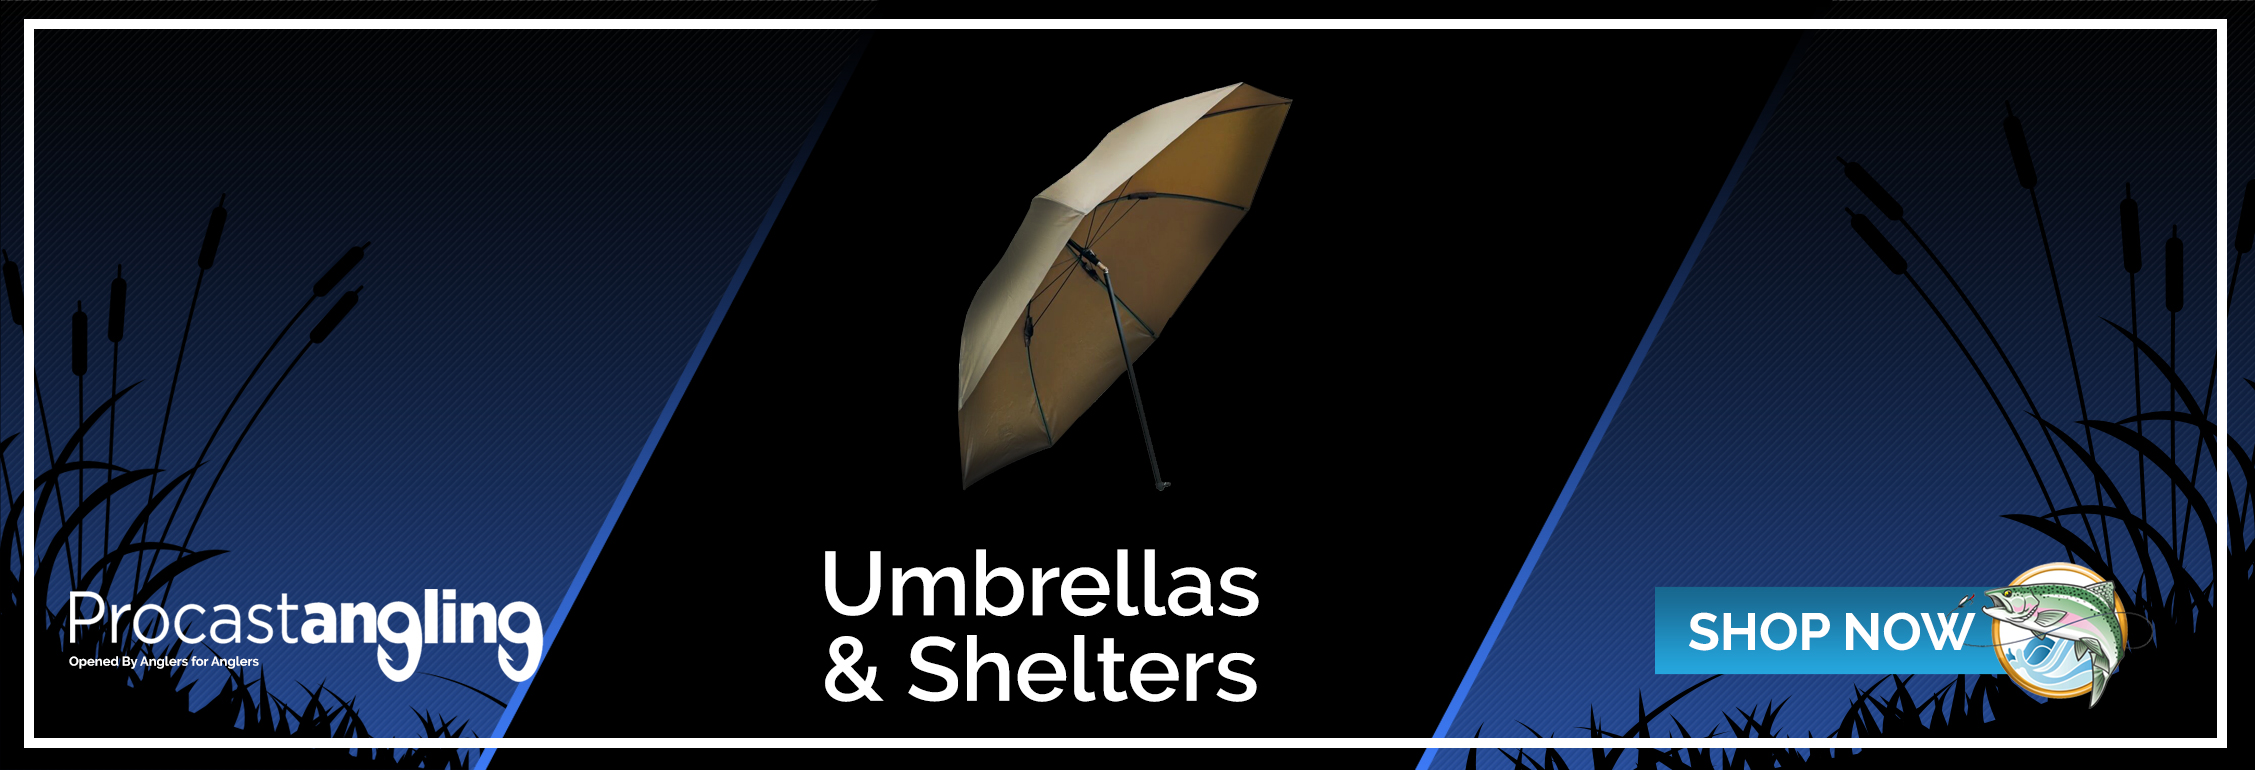 UMBRELLAS & SHELTERS